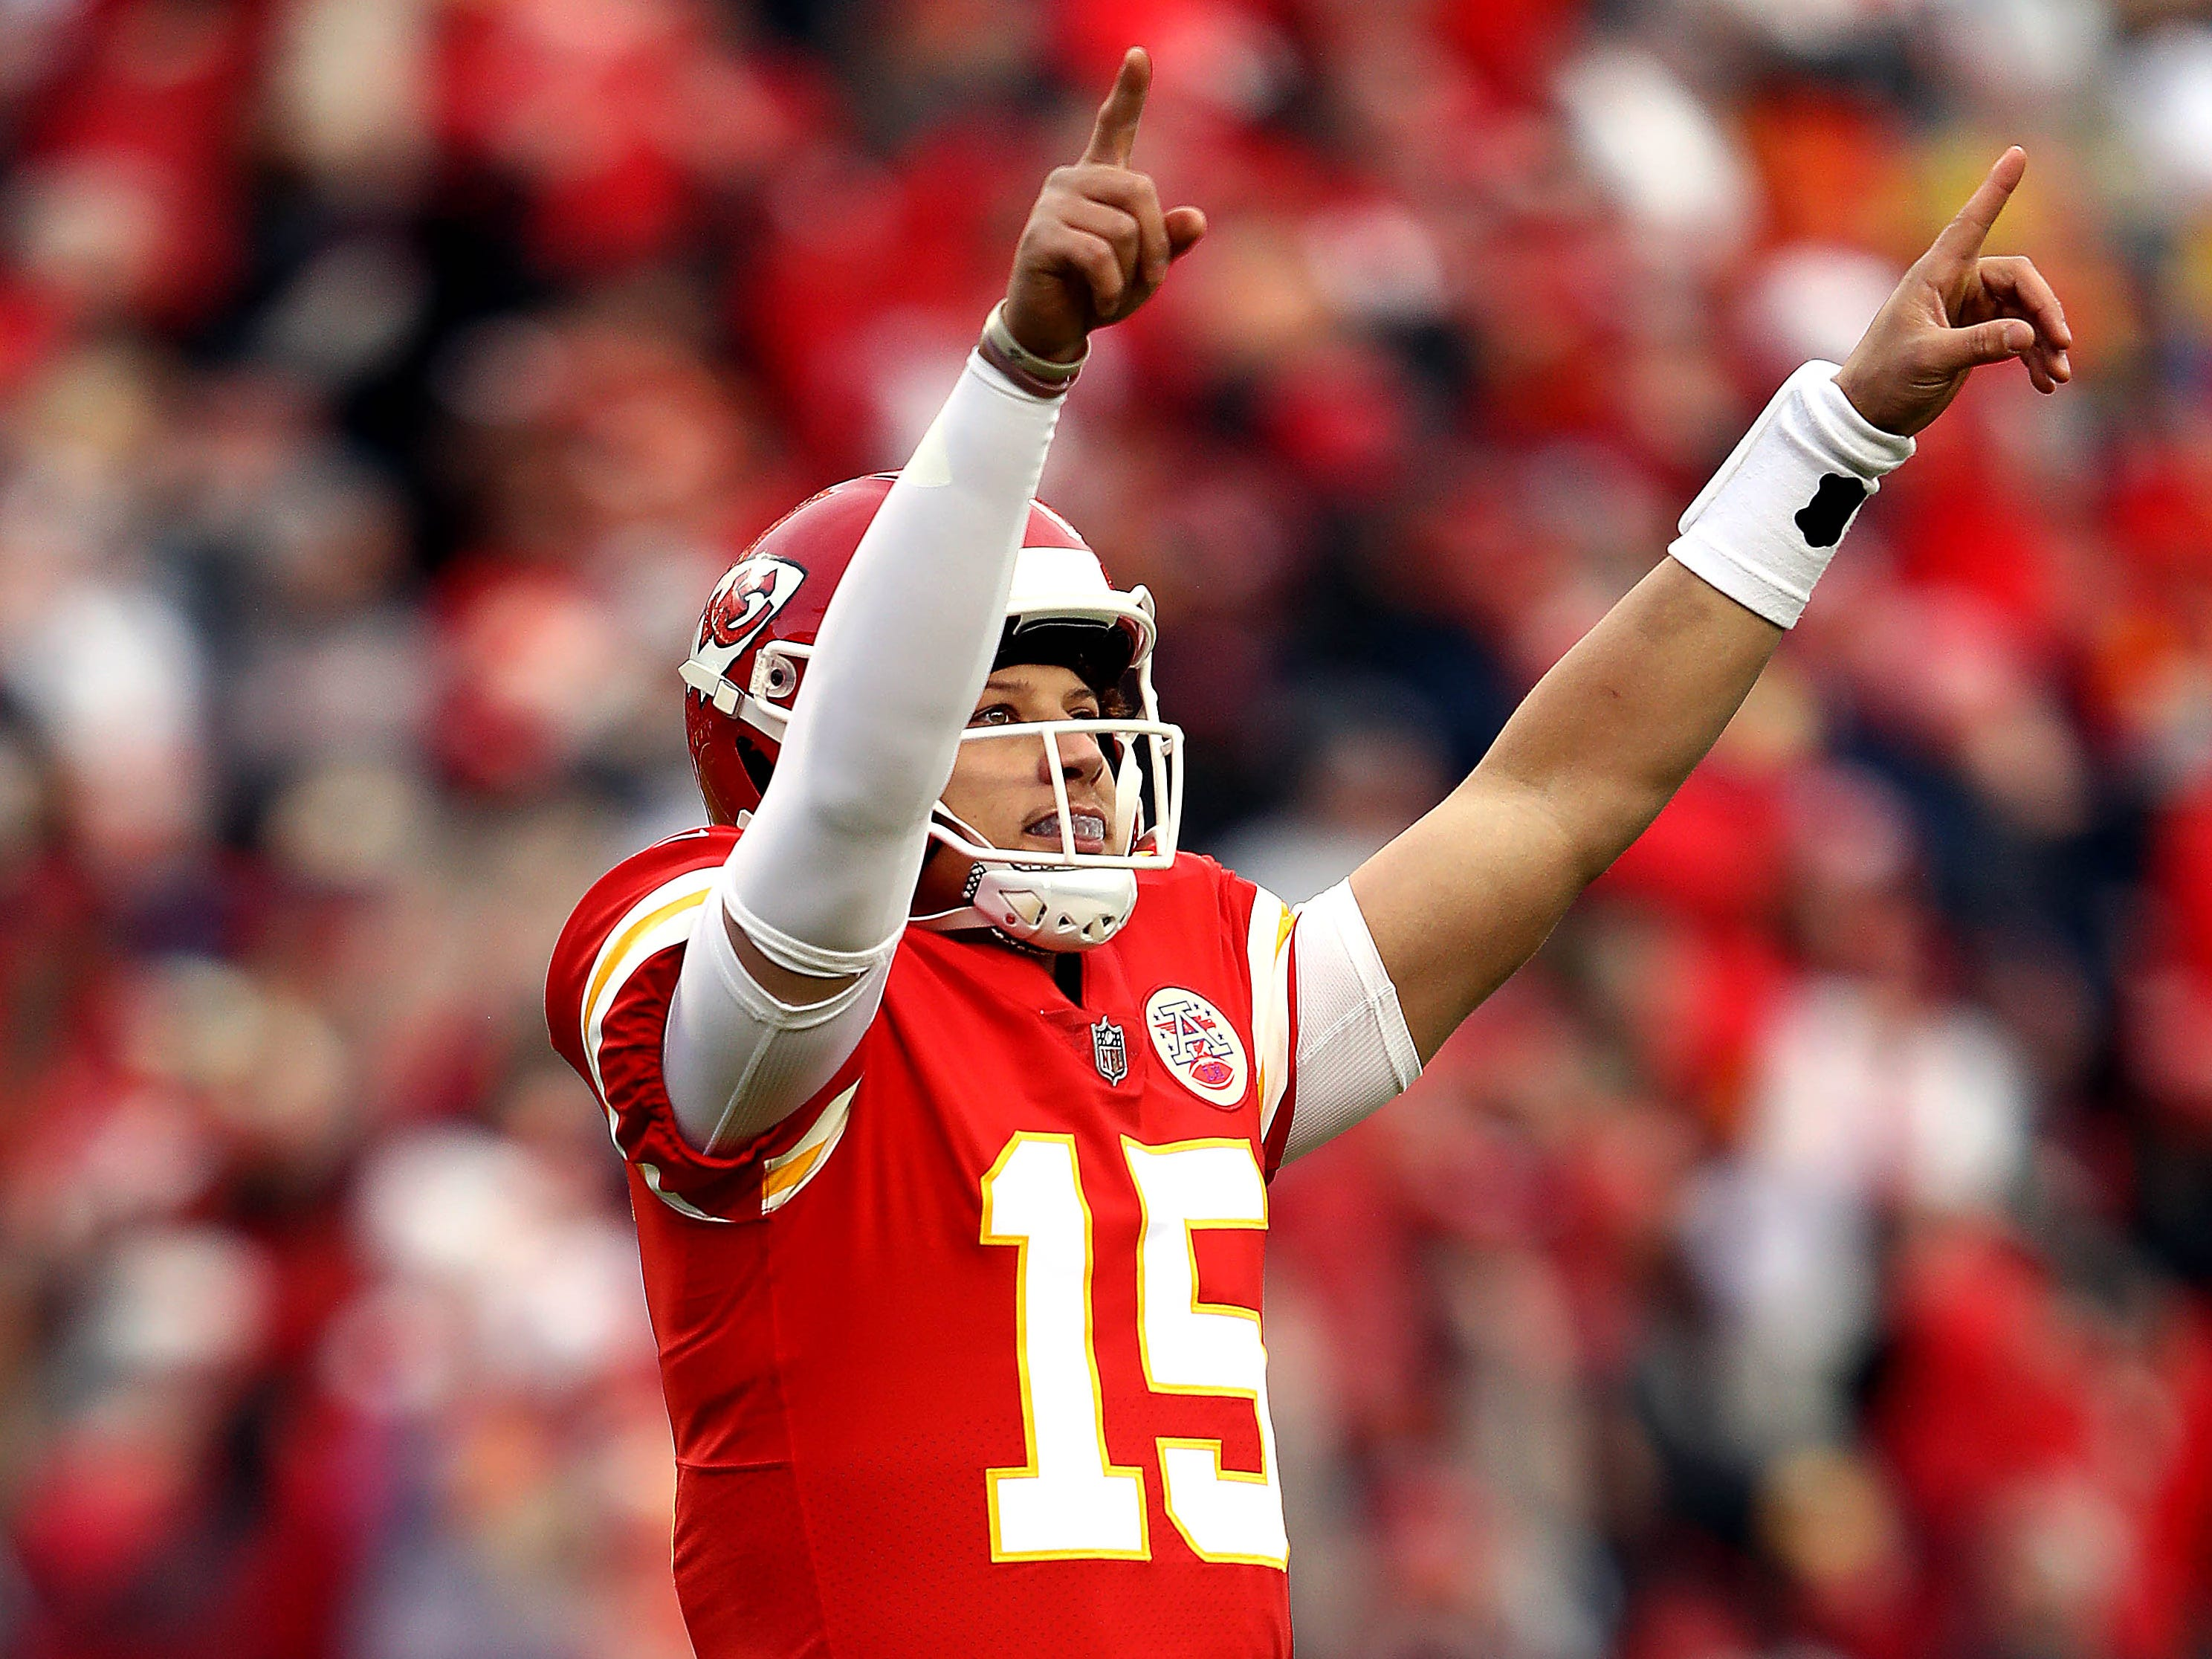 Kansas City Chiefs quarterback Patrick Mahomes will be the featured speaker at the Rochester Press-Radio Club's Day of Champions Dinner on April 3.